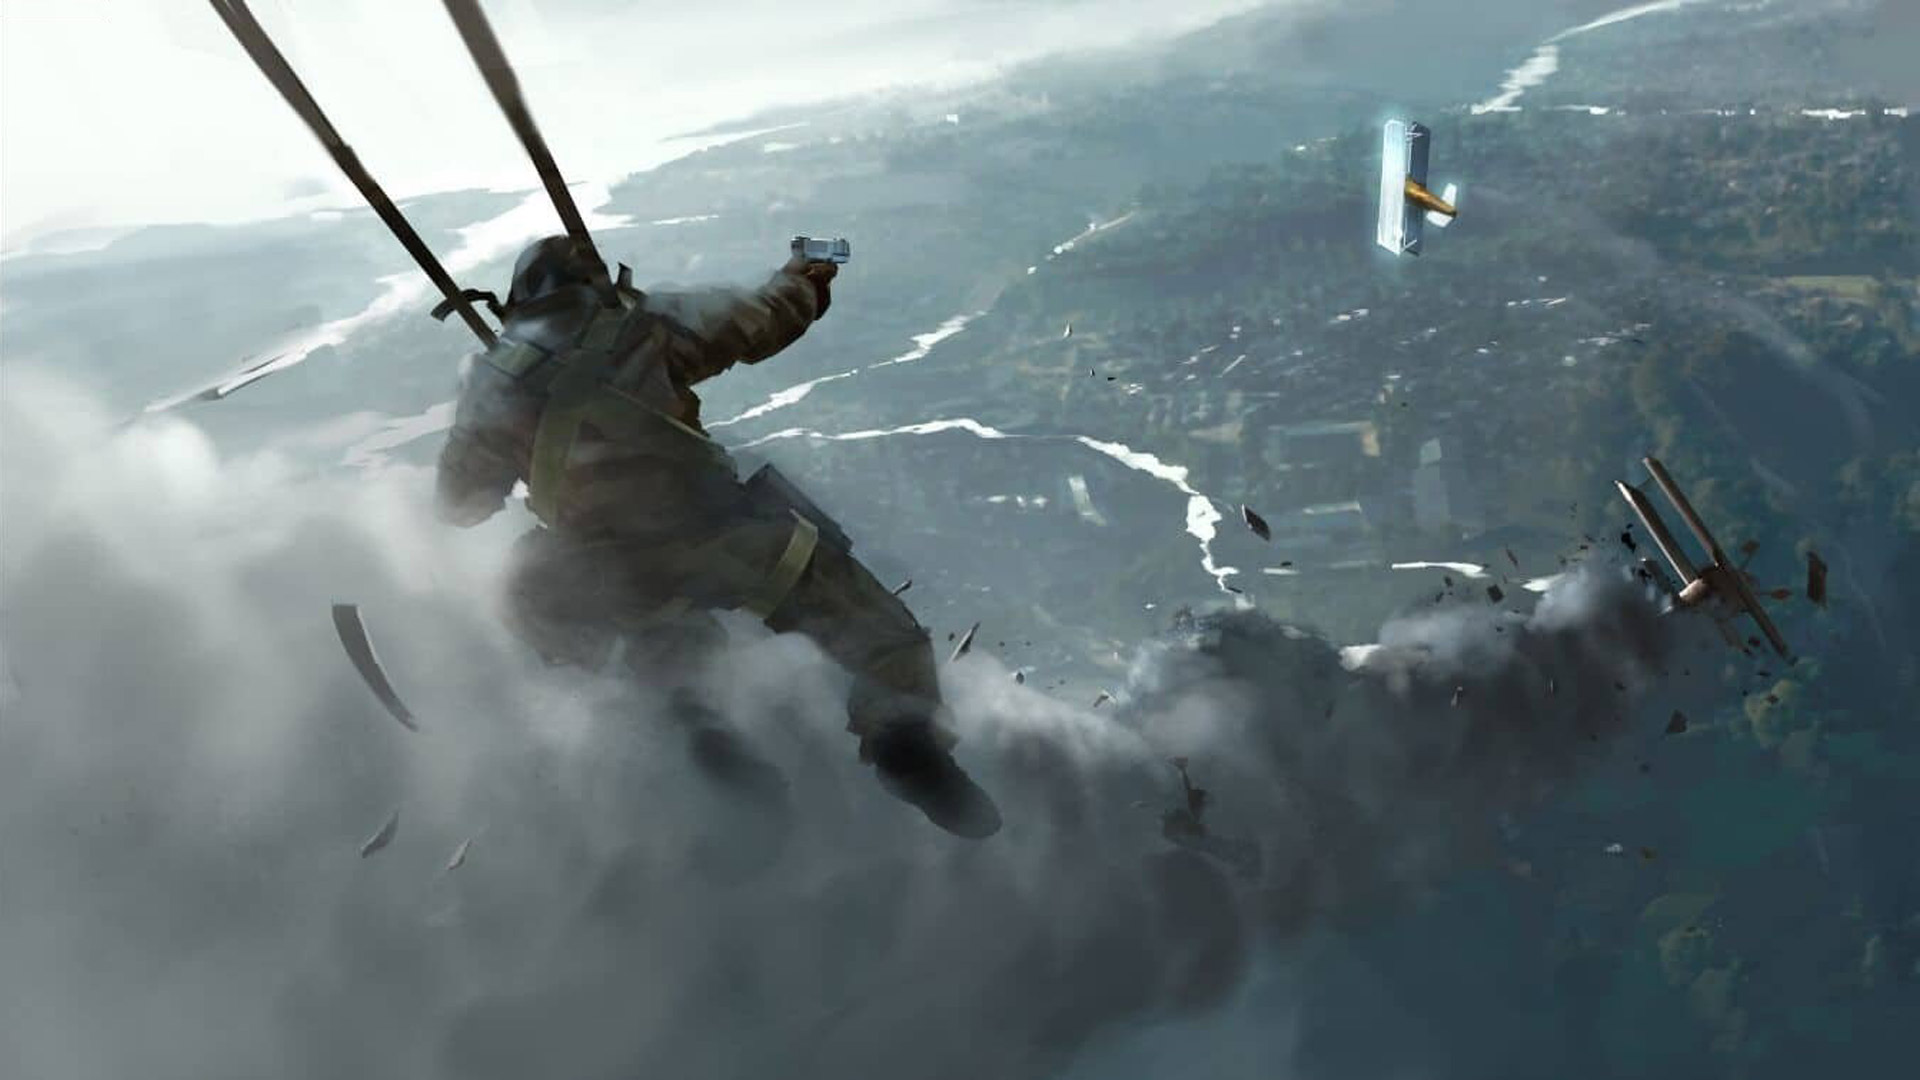 Battlefield 1 Wallpaper in 1920x1080